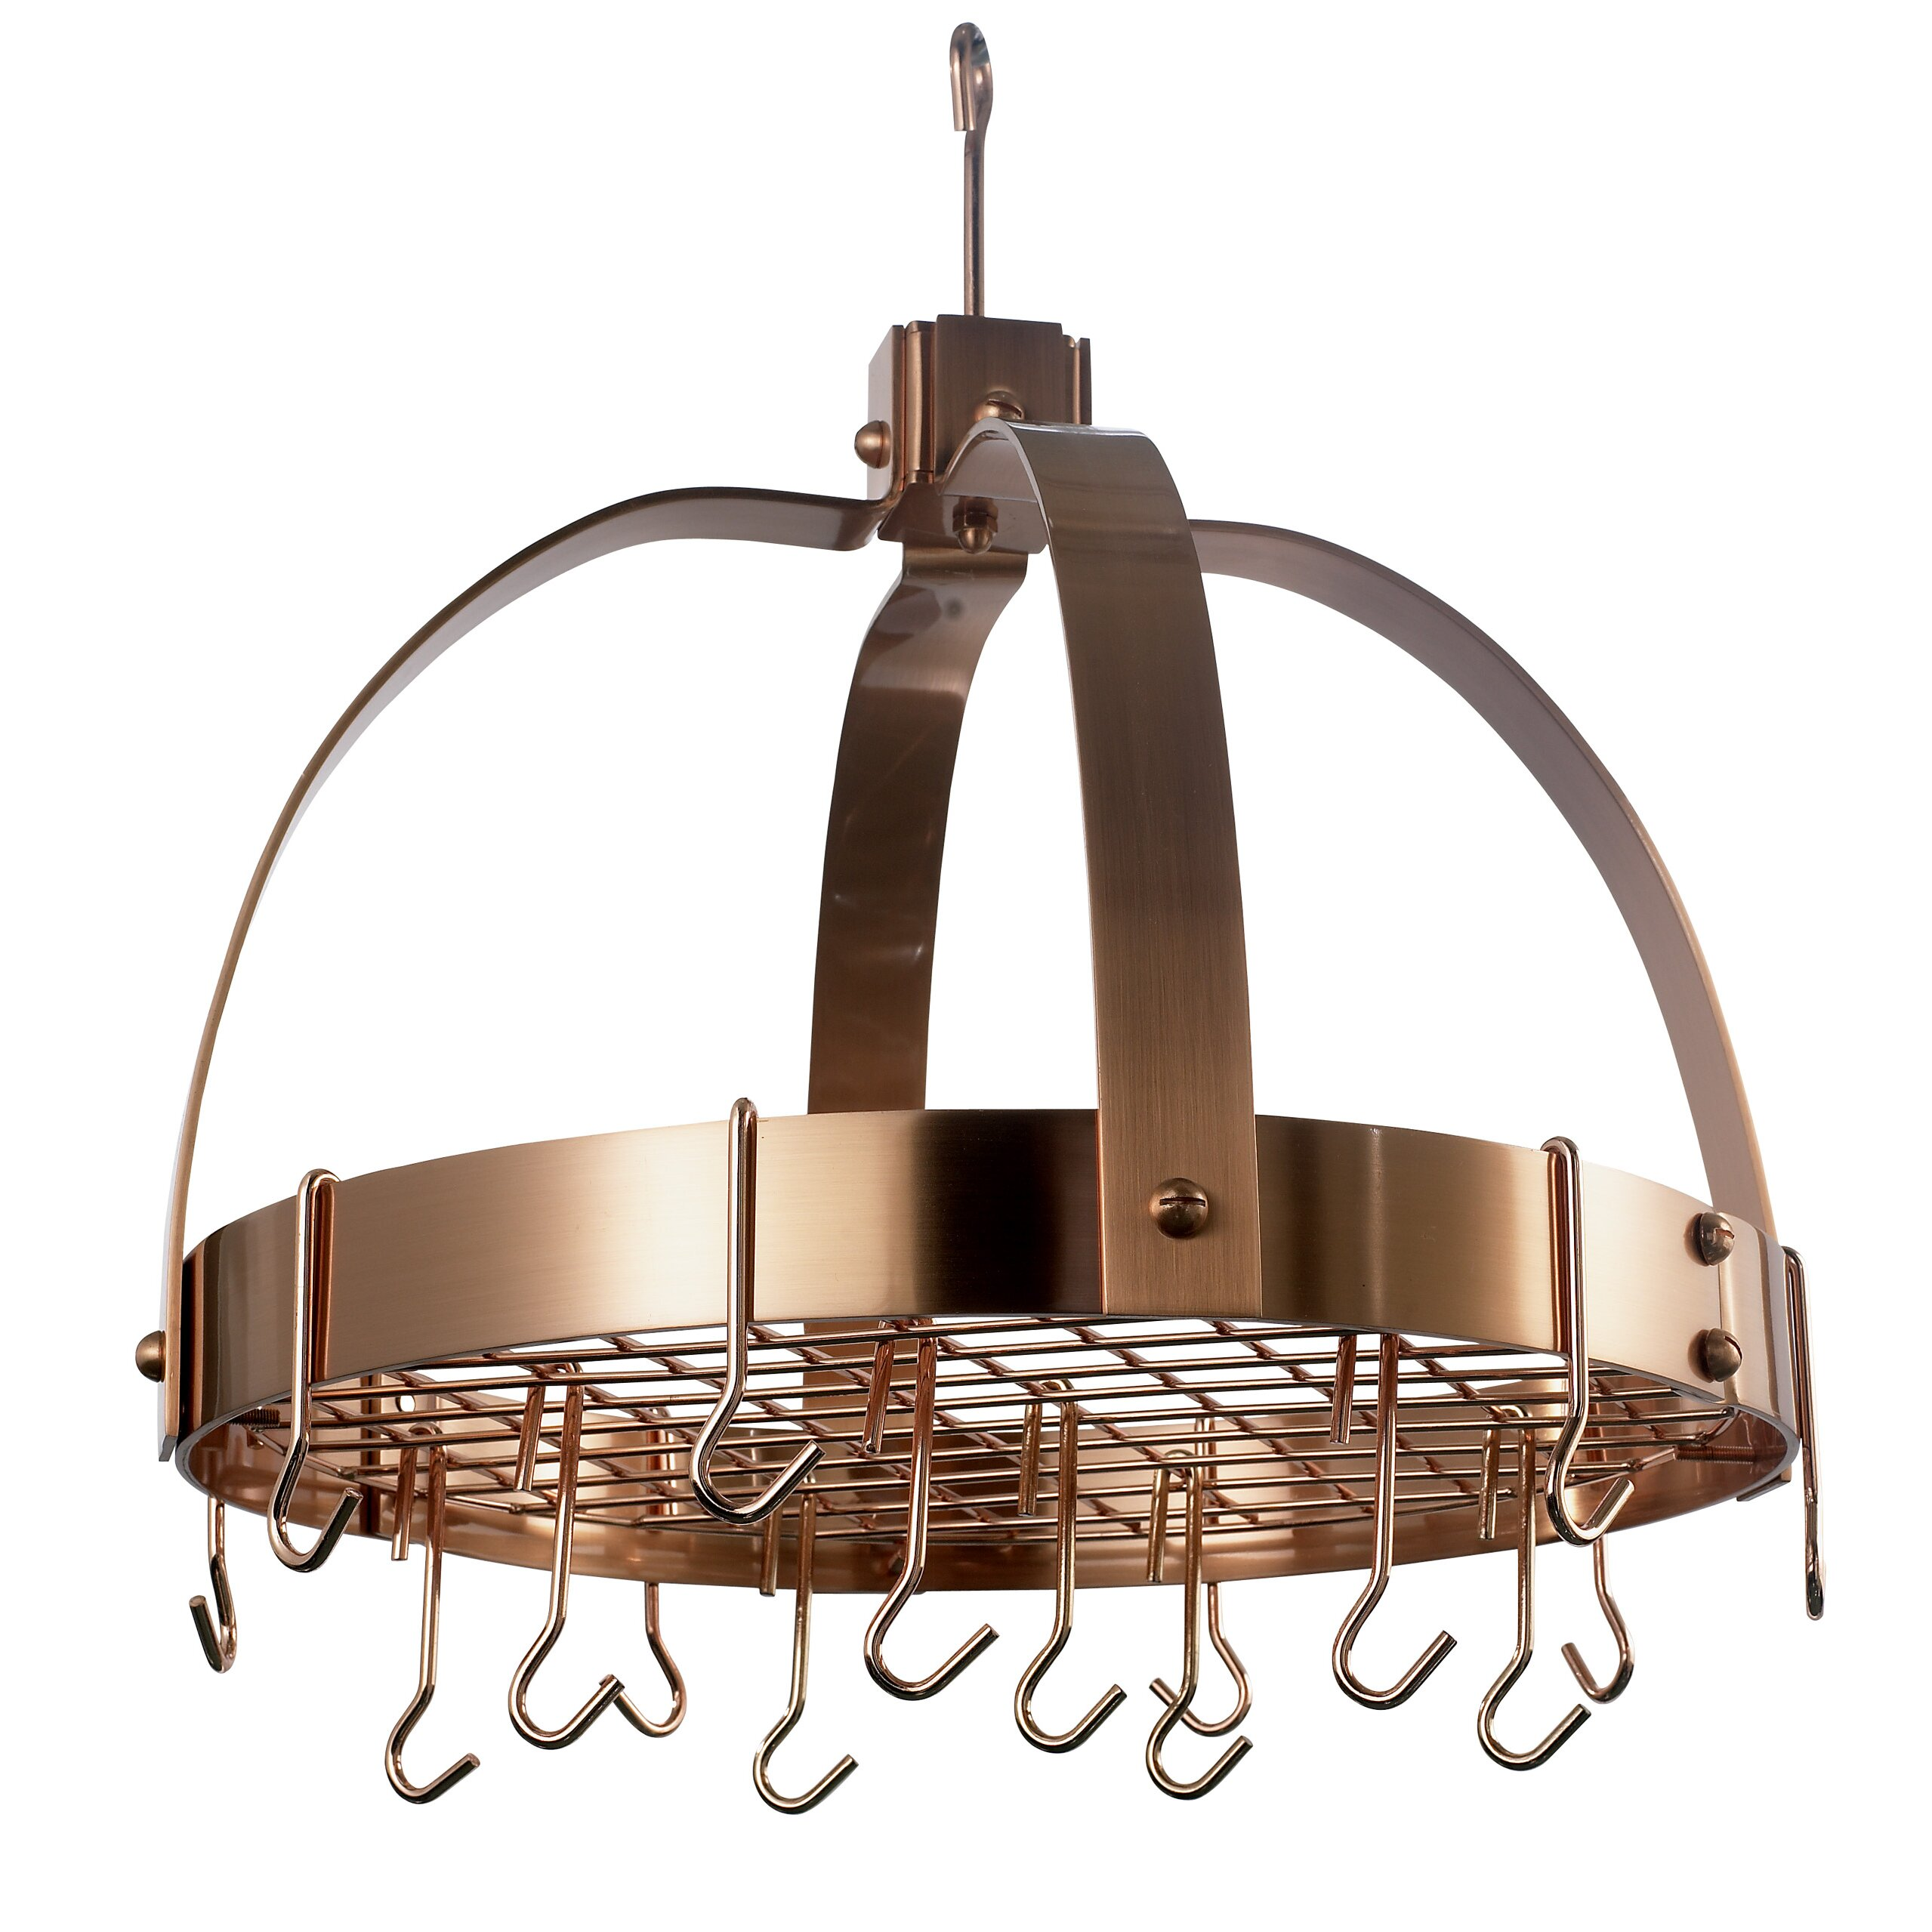 Pot Rack: Old Dutch Dome Decor Pot Rack With Grid And Hooks